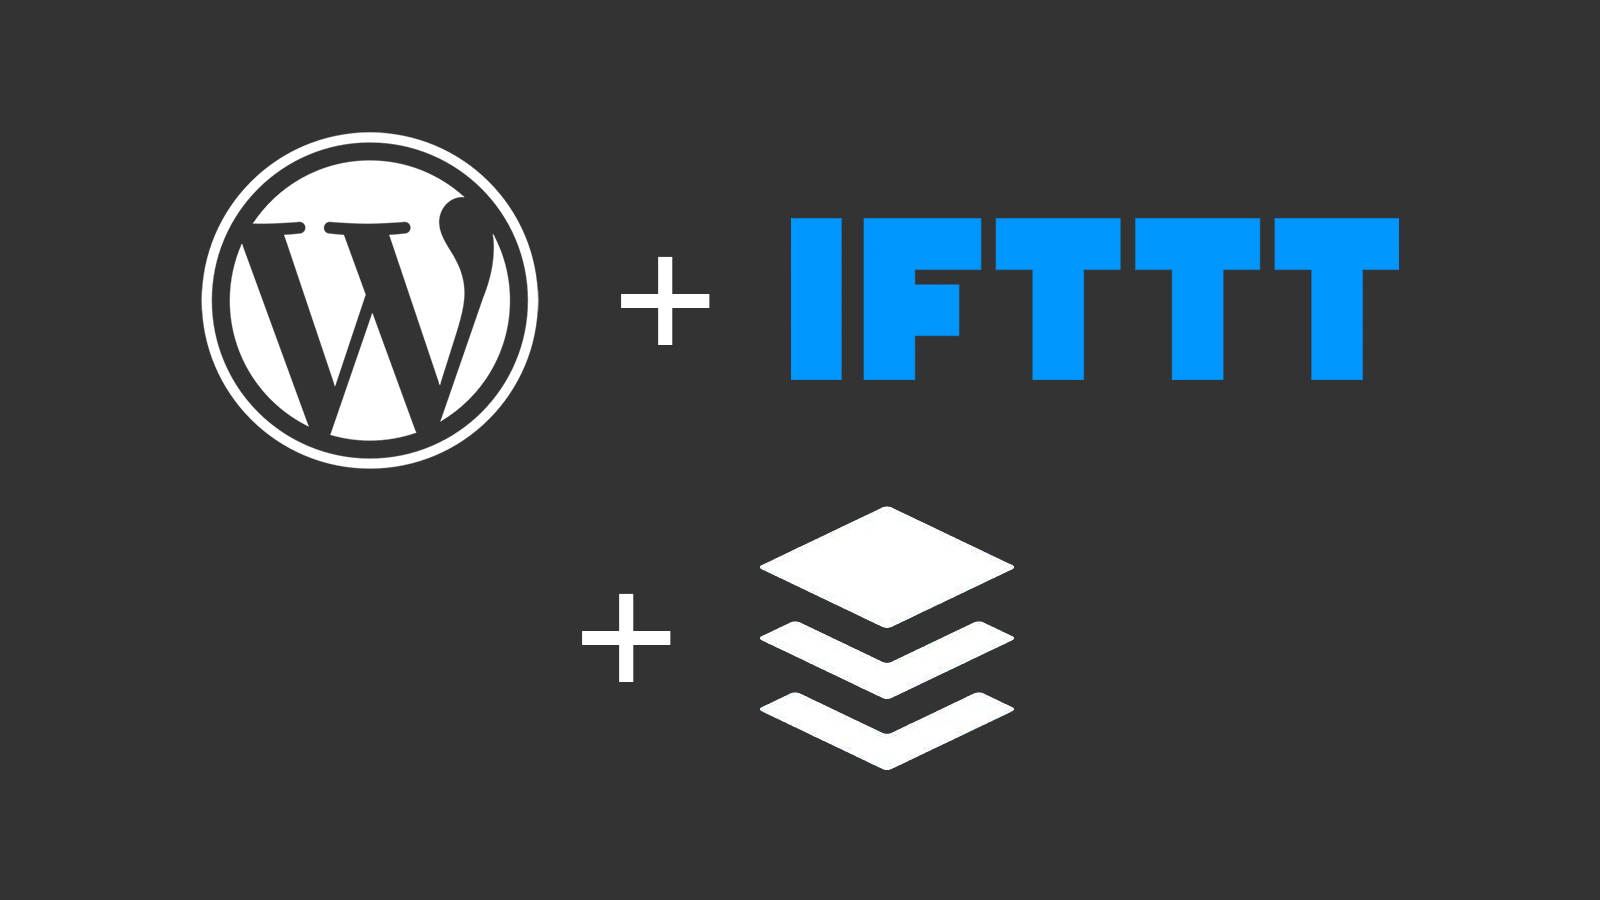 WordPress + IFTTT + Buffer